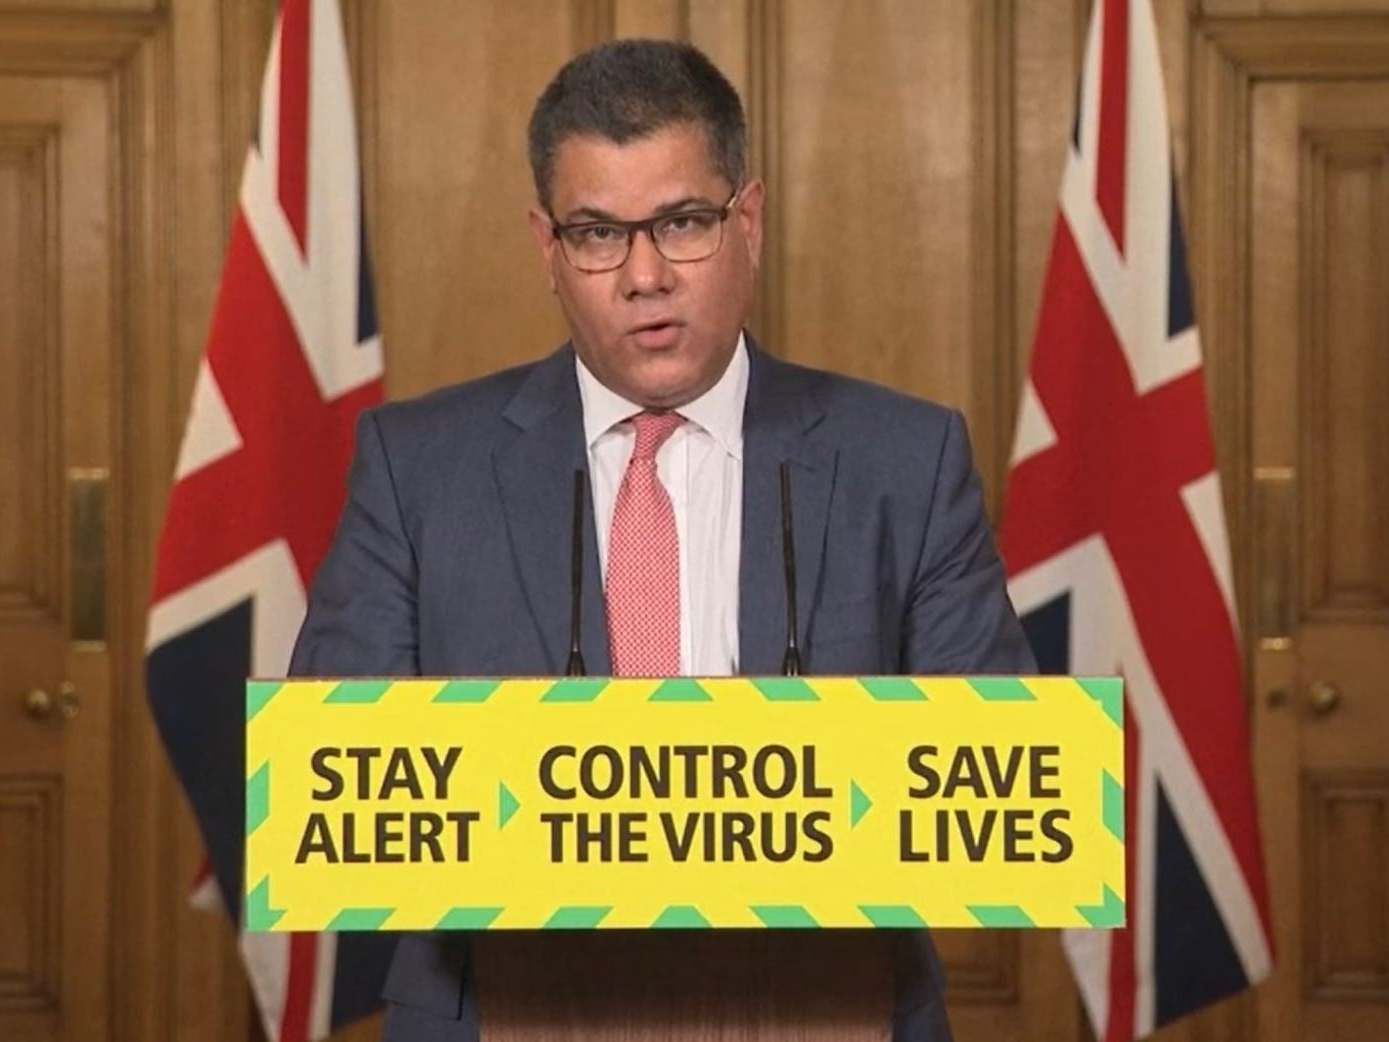 Coronavirus UK news live: Latest updates as government drops primary school reopening plan